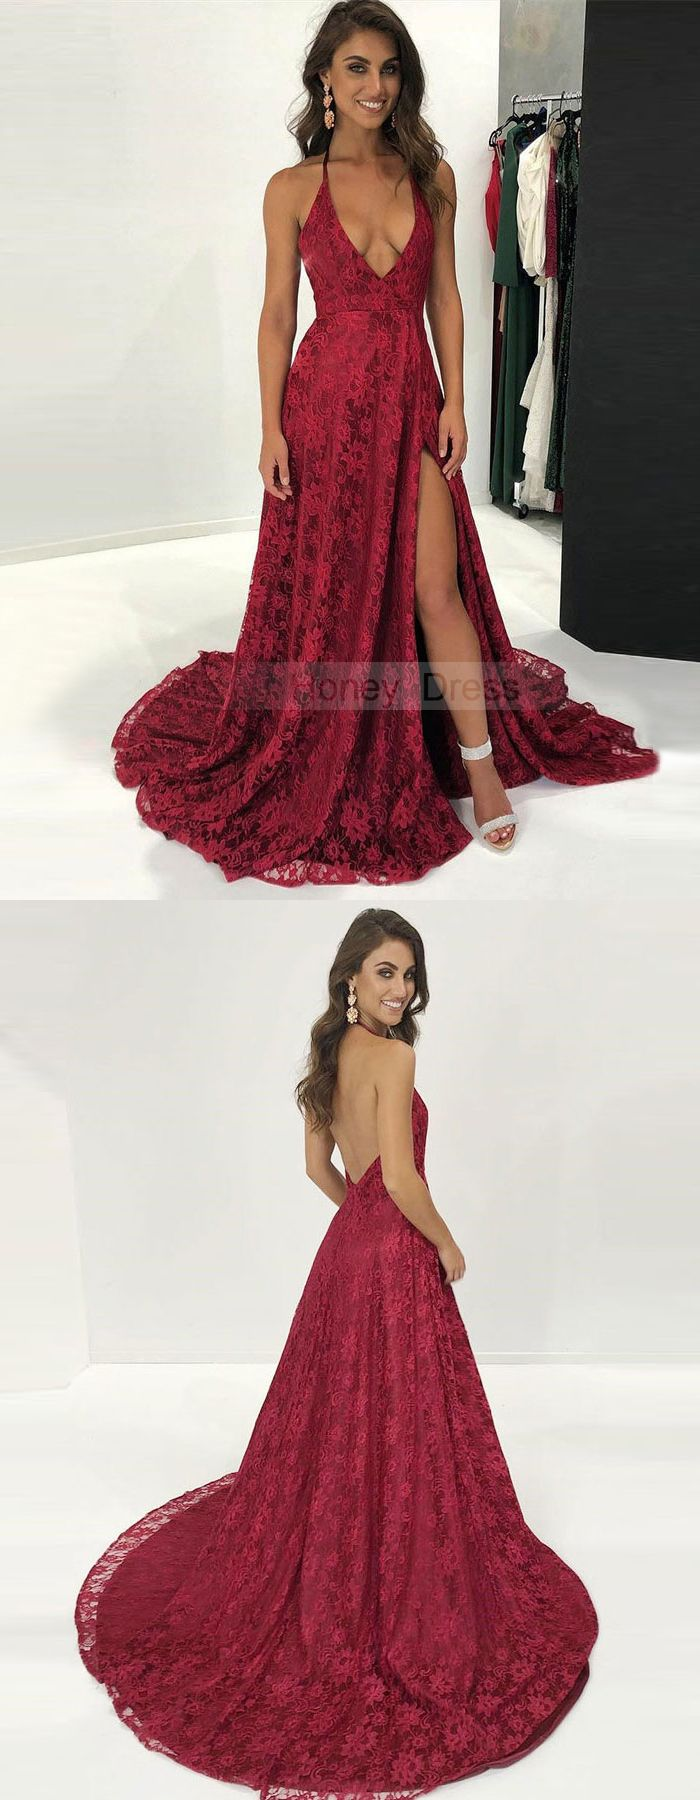 Sexy spaghetti strap burgundy lace deep vneck aline evening gown